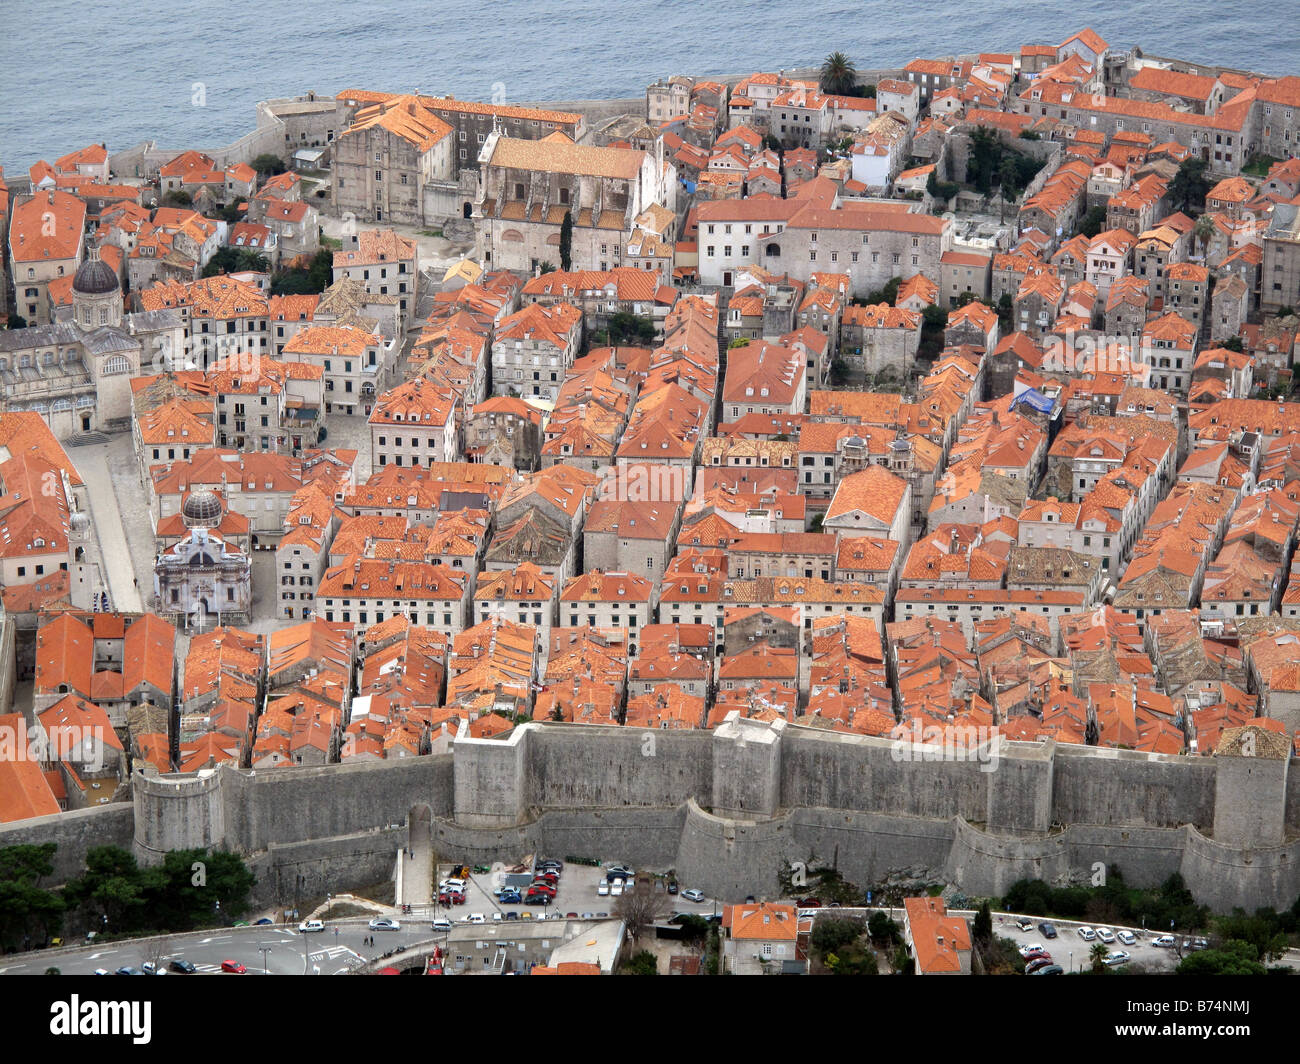 A view of the rooftops and city walls of the old town of Dubrovnik in Croatia on the Adriatic Coast in Eastern Europe. - Stock Image